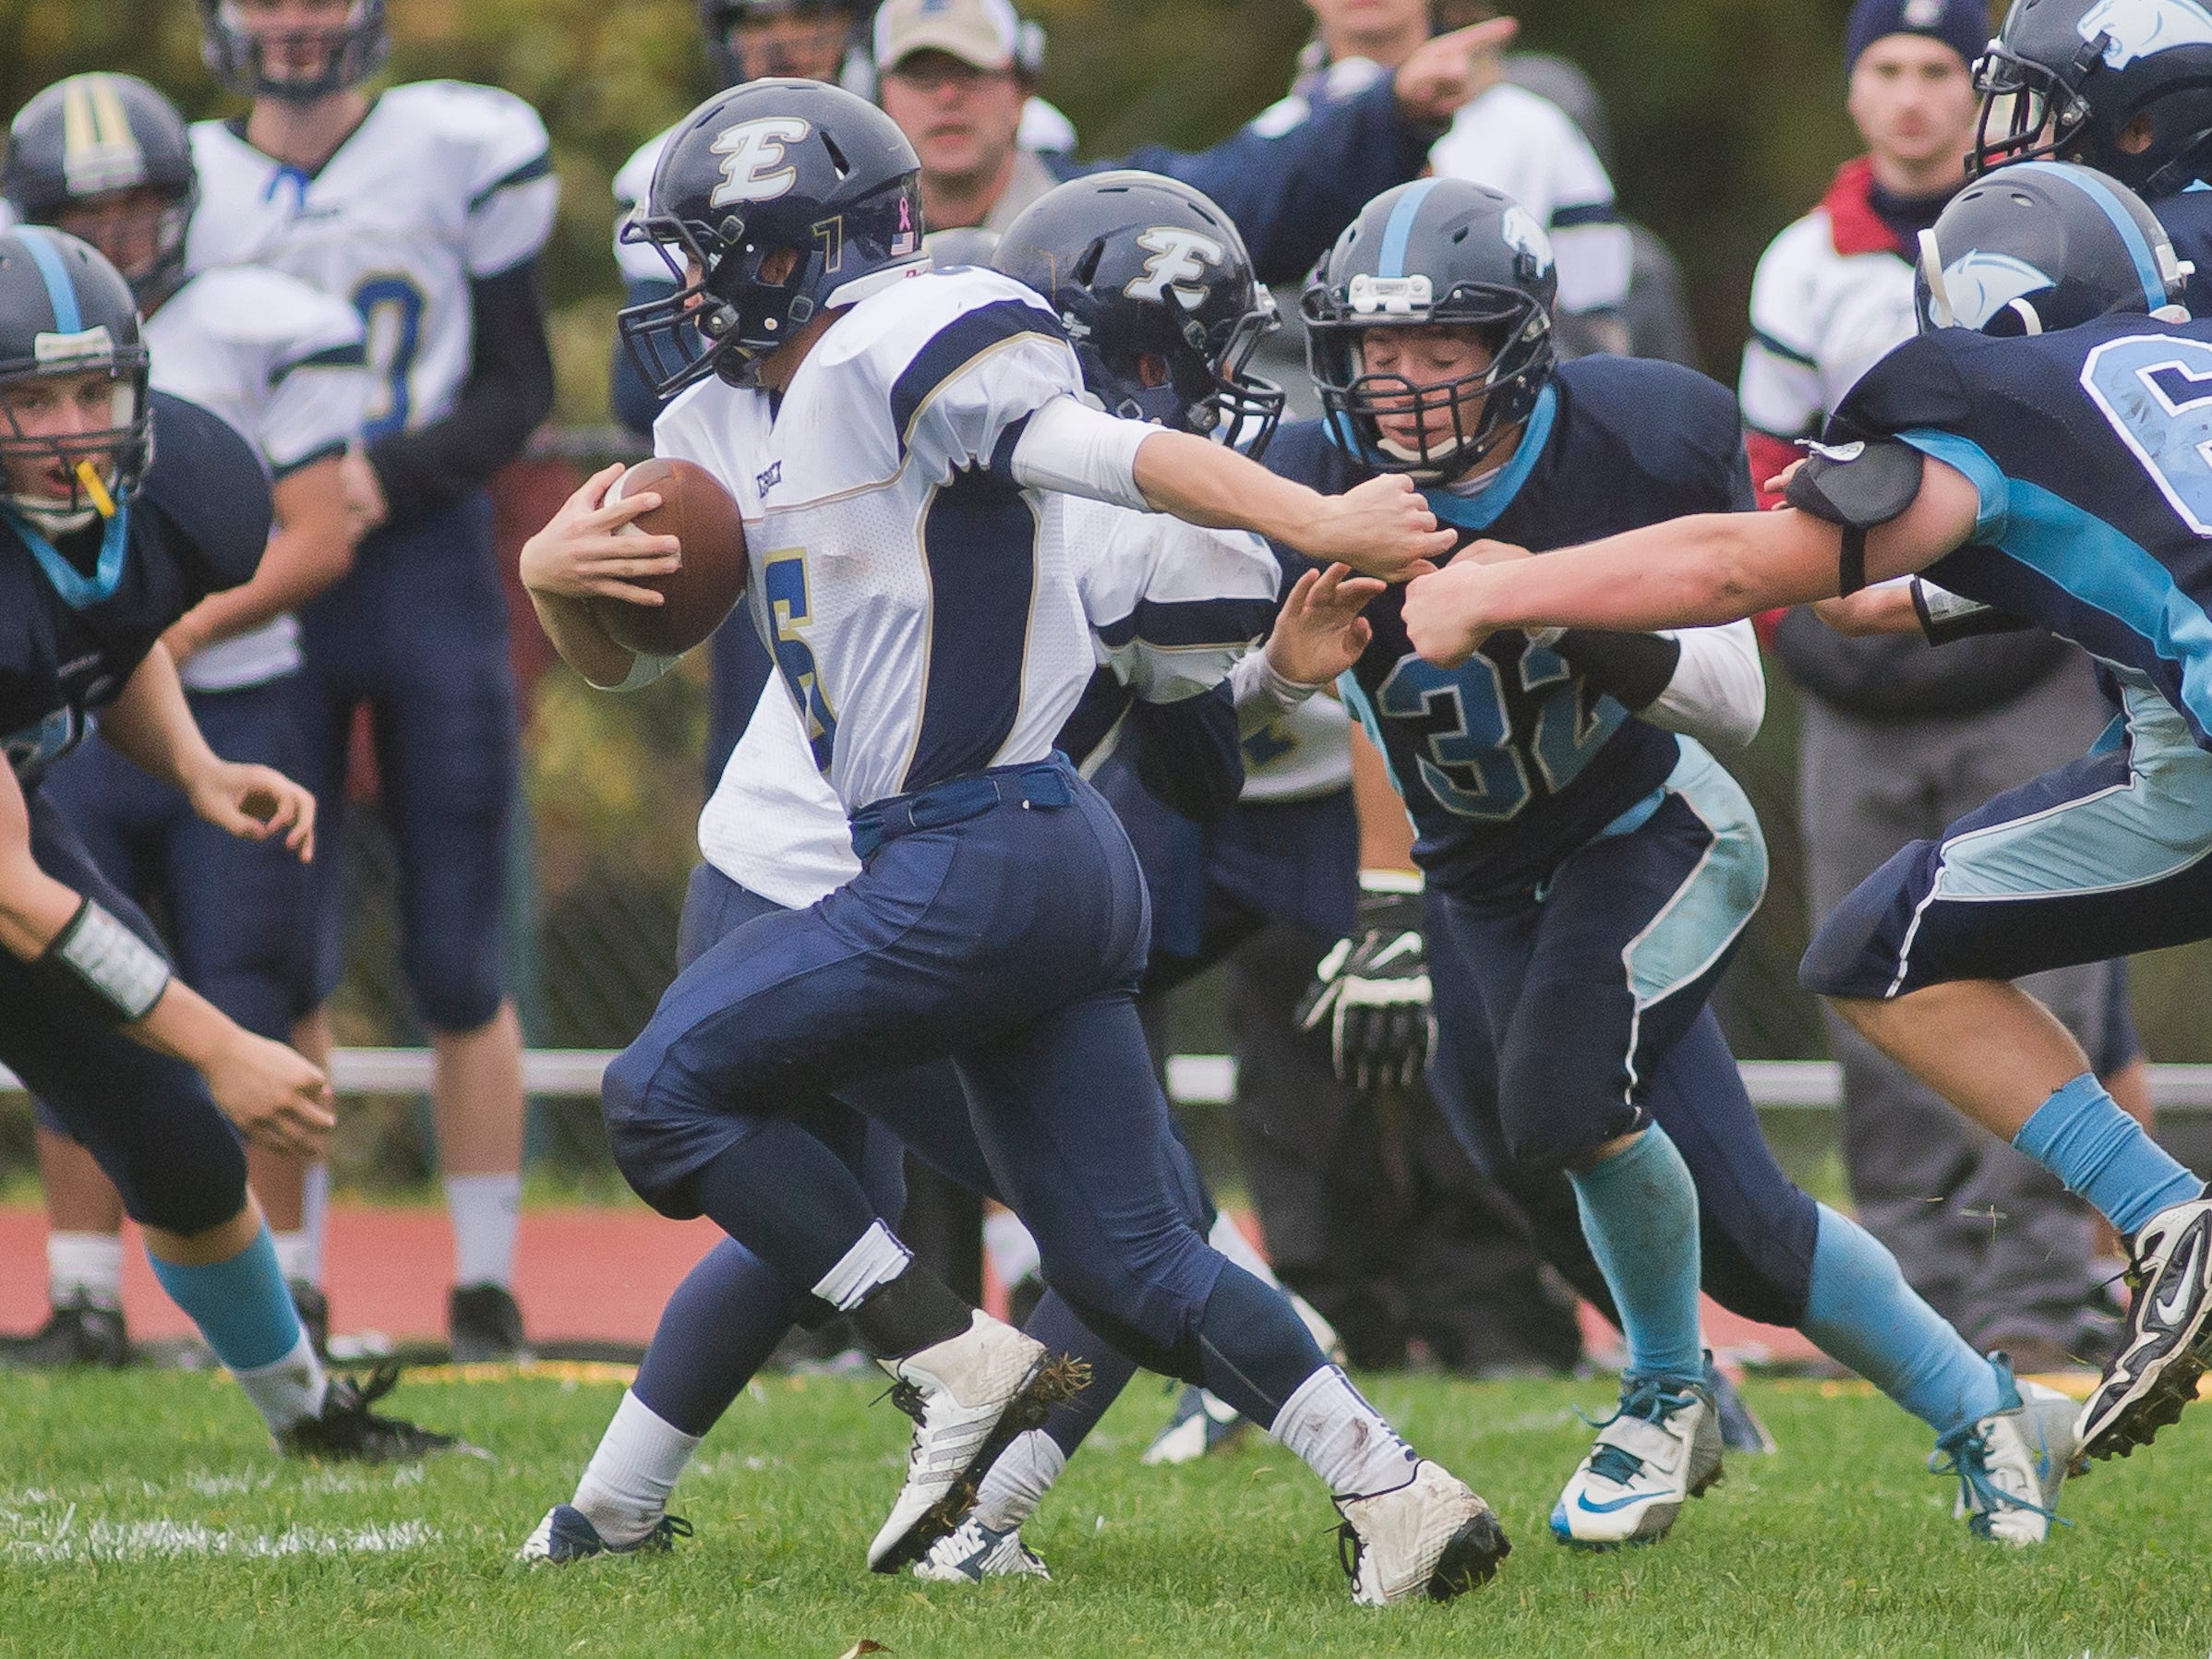 Essex High School's #6 Cody Greene breaks free of the MMU defense, converting his run to a touchdown in the first half of their game in Jericho Saturday.